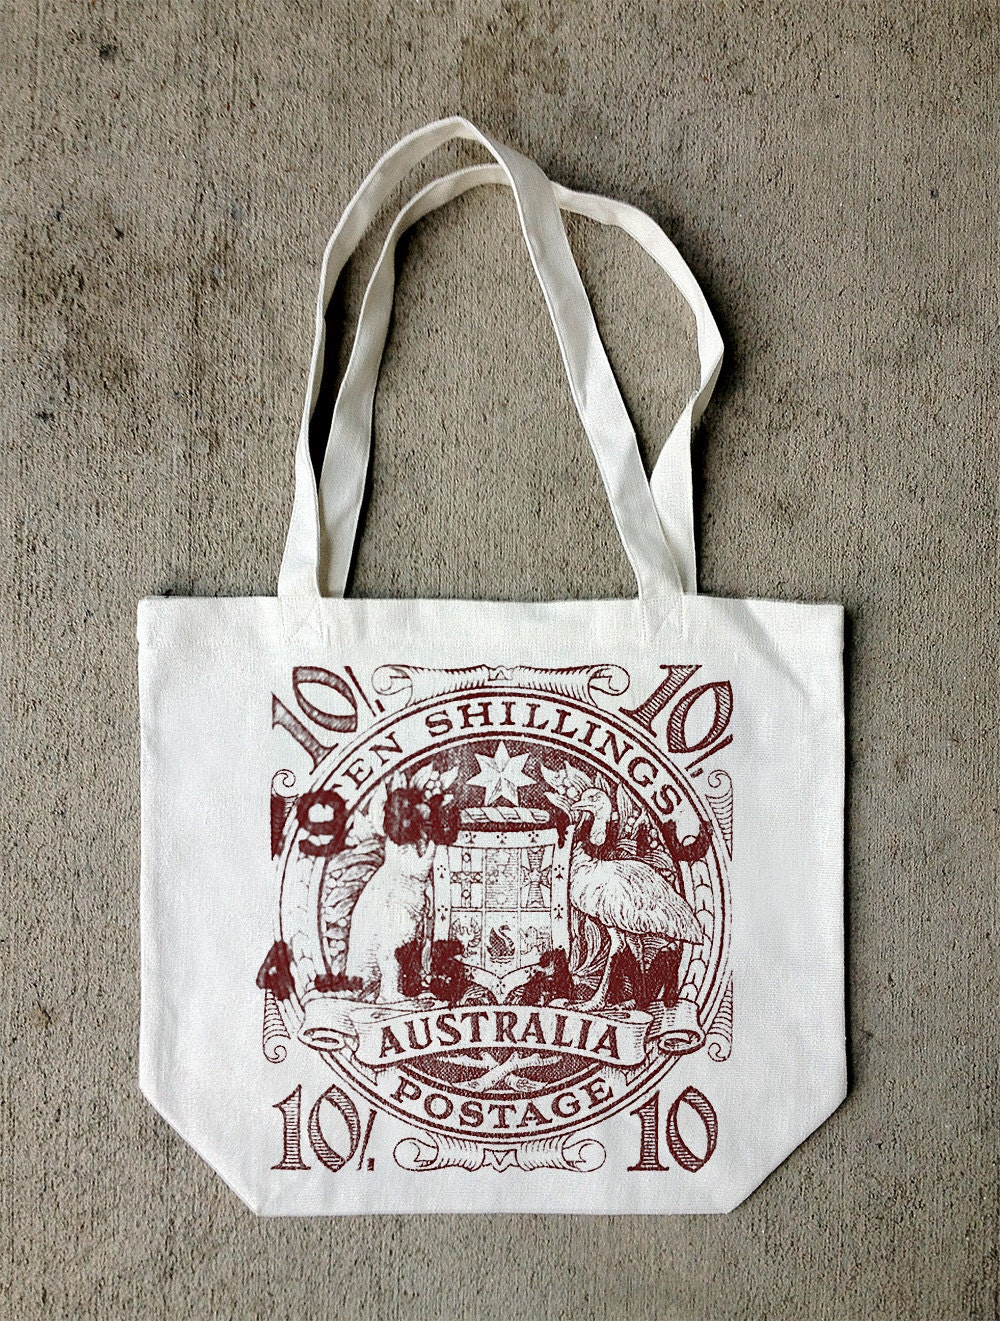 Australia 10 Shilling - Screen Printed Recycled Cotton Canvas Tote Bag - CrawlSpaceStudios